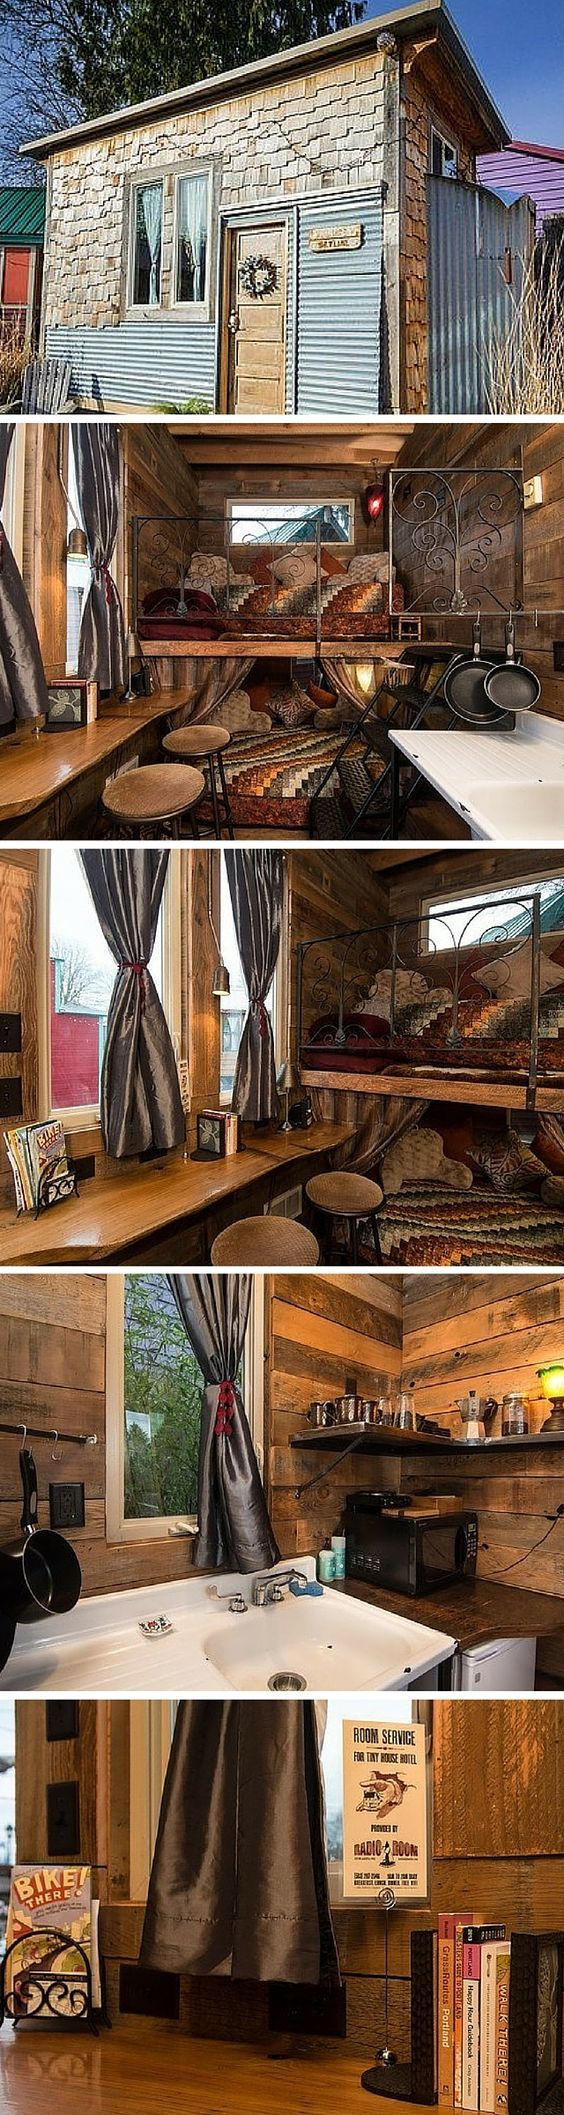 The Skyline cabin, a tiny house for rent in Portland, Oregon.: